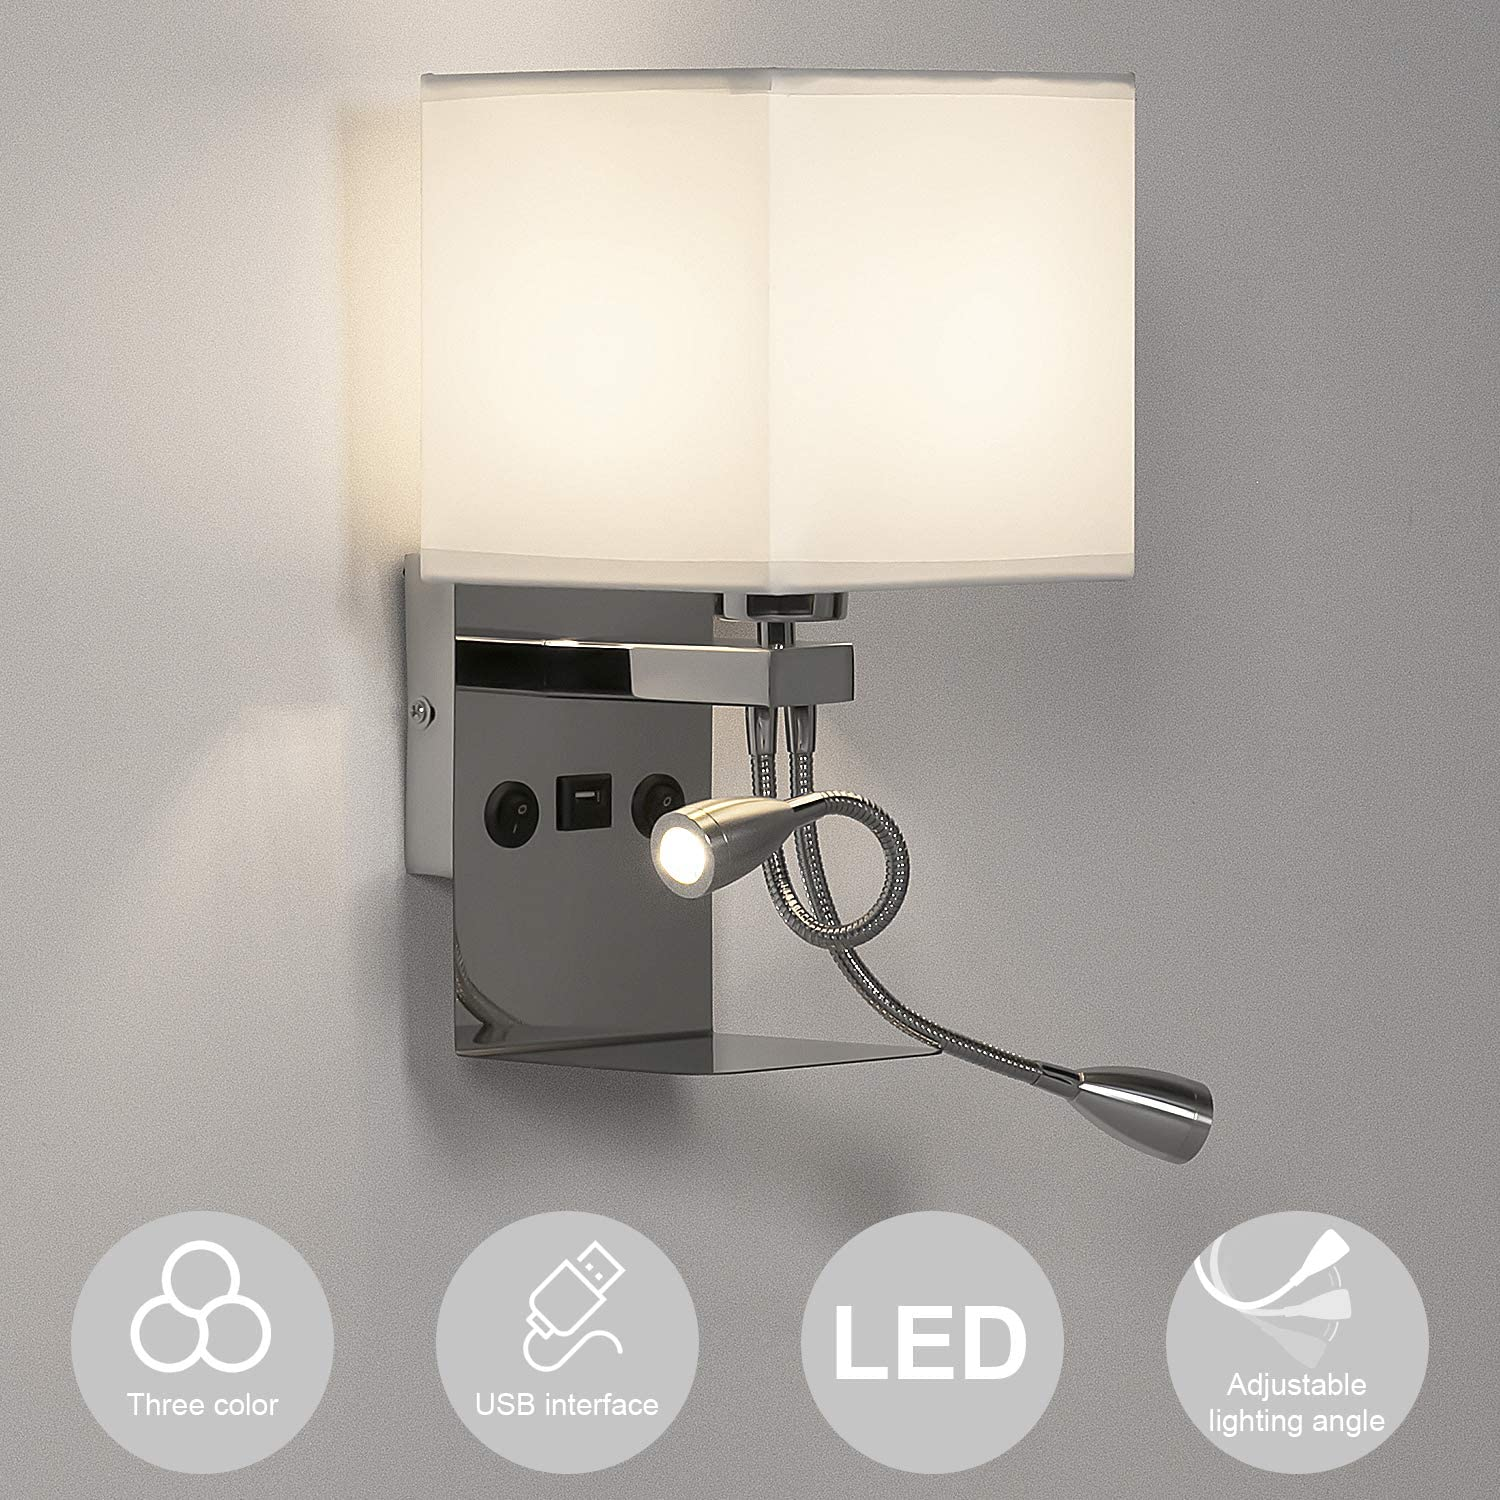 LEDMO Lámpara mesita noche, Aplique pared dormitorio lectura interior regulable e27, Lampara de pared con 2 luces de lectura flexibles ajustables y 1 interfaz USB (incluida bombilla regulable)